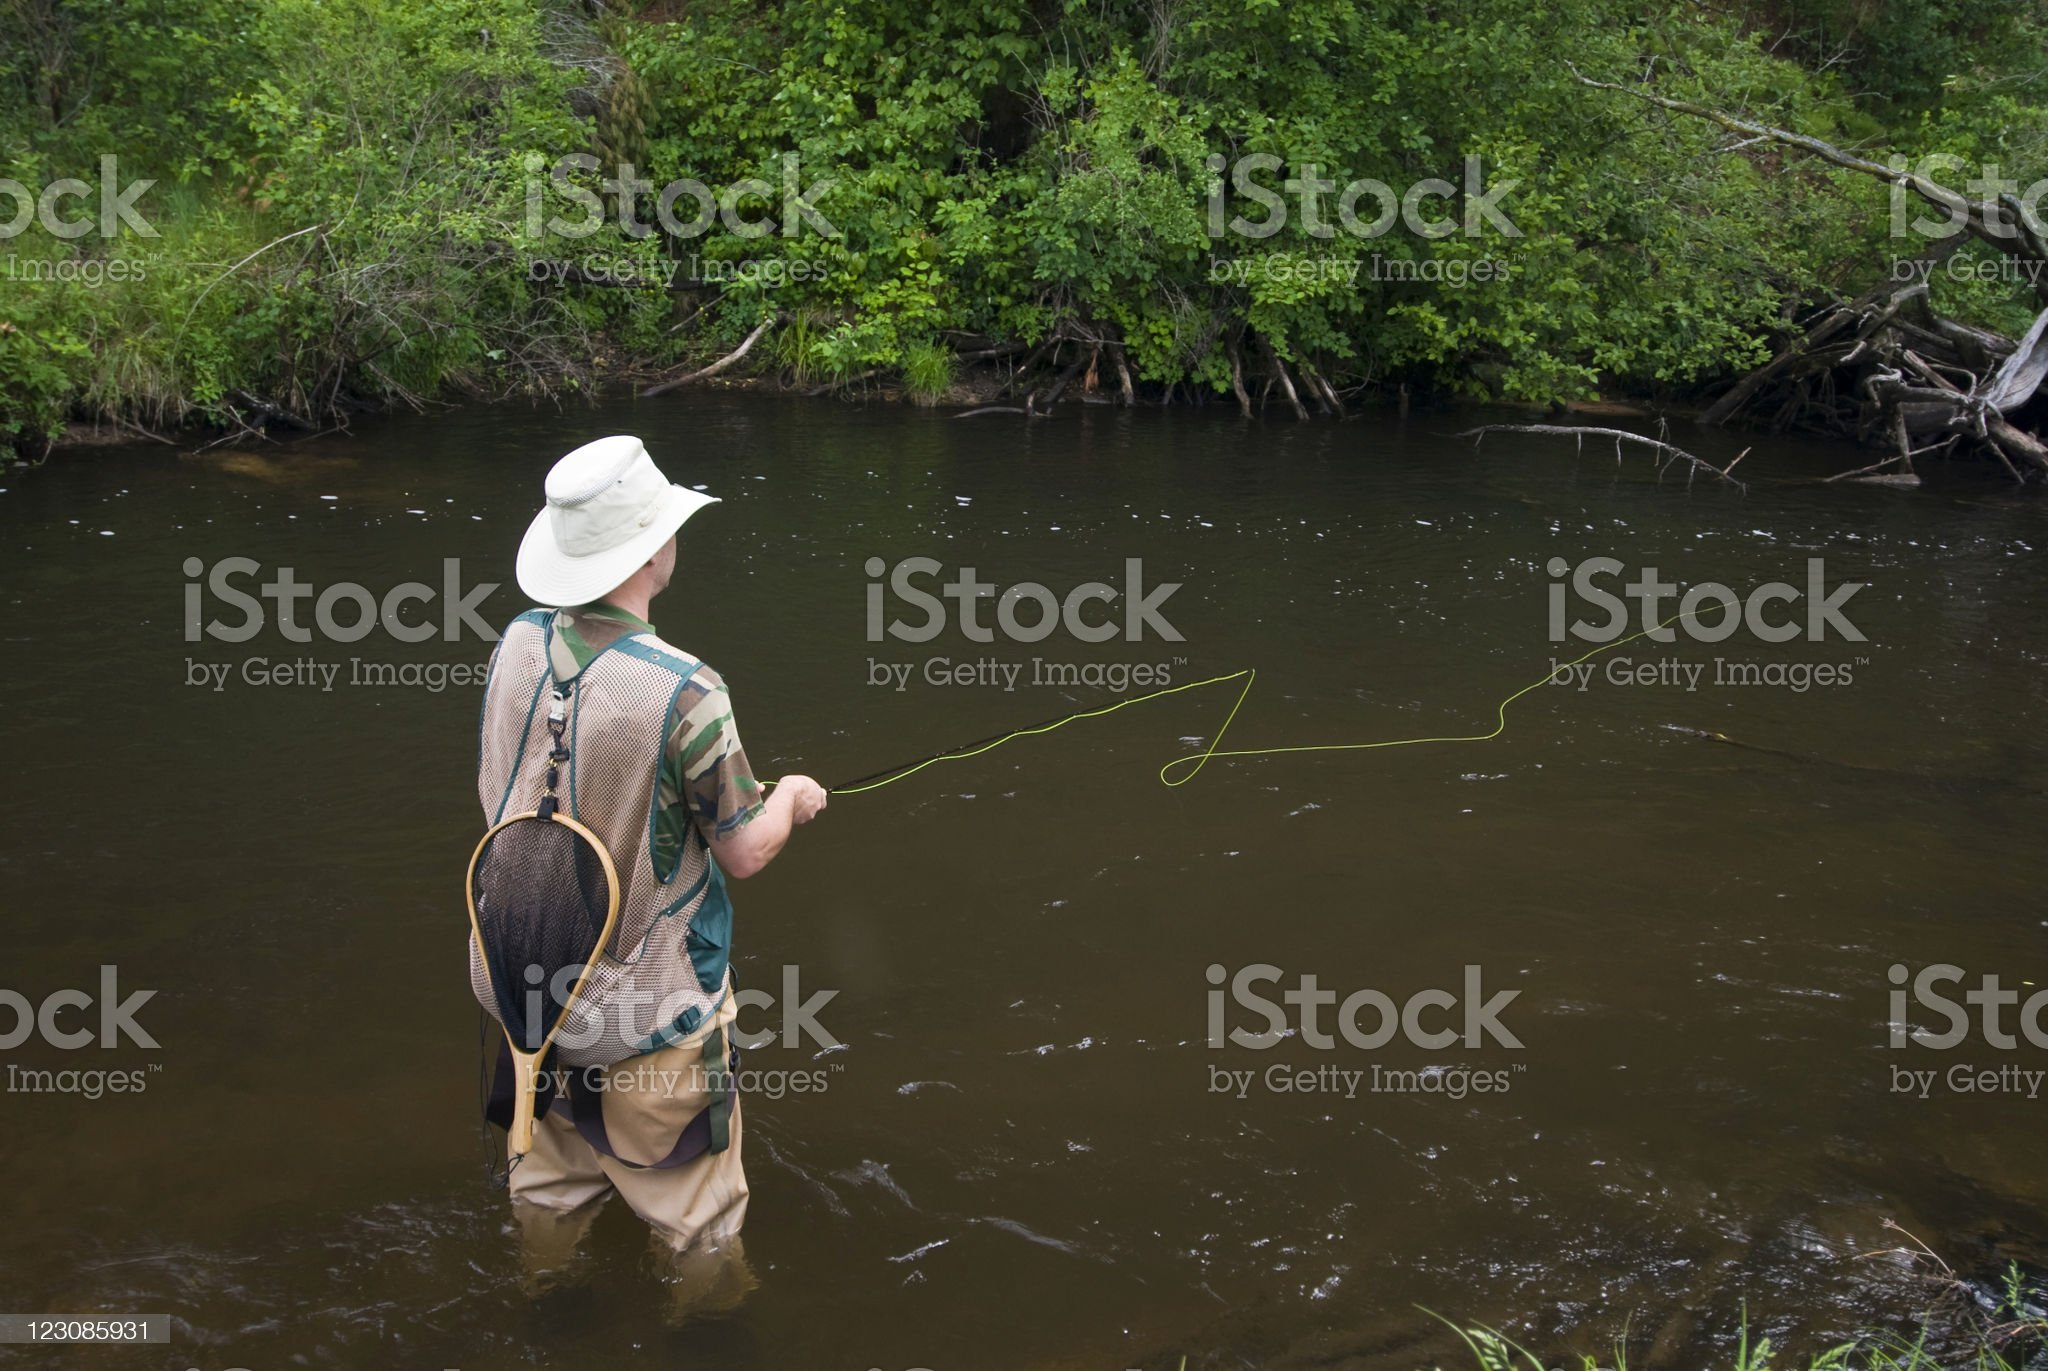 Fly Fishing on a Trout Stream royalty-free stock photo